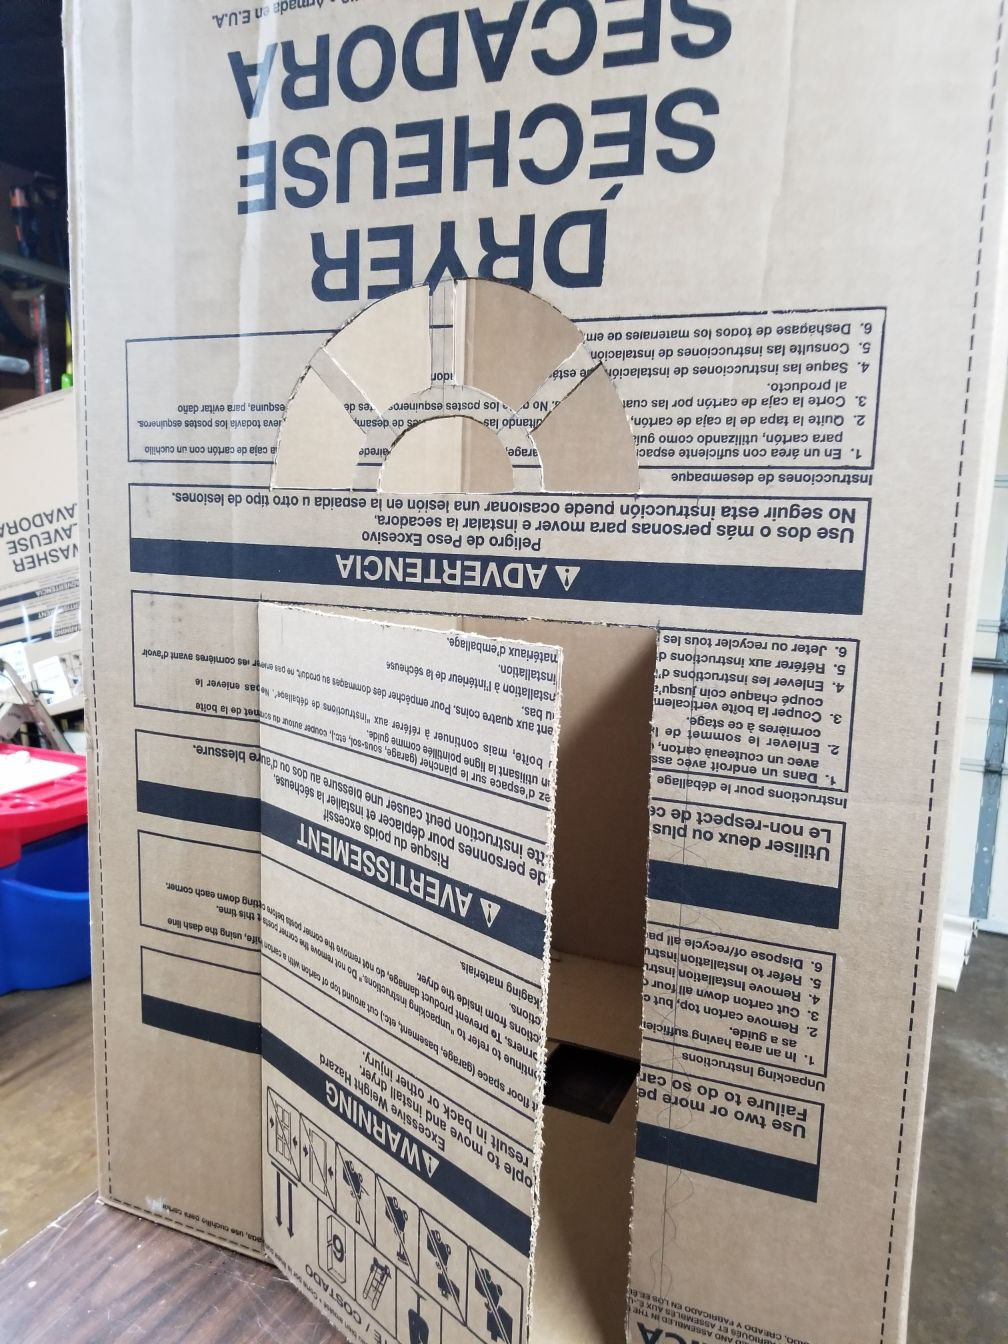 Combine washer and dryer cartons to make a cardboard playhouse